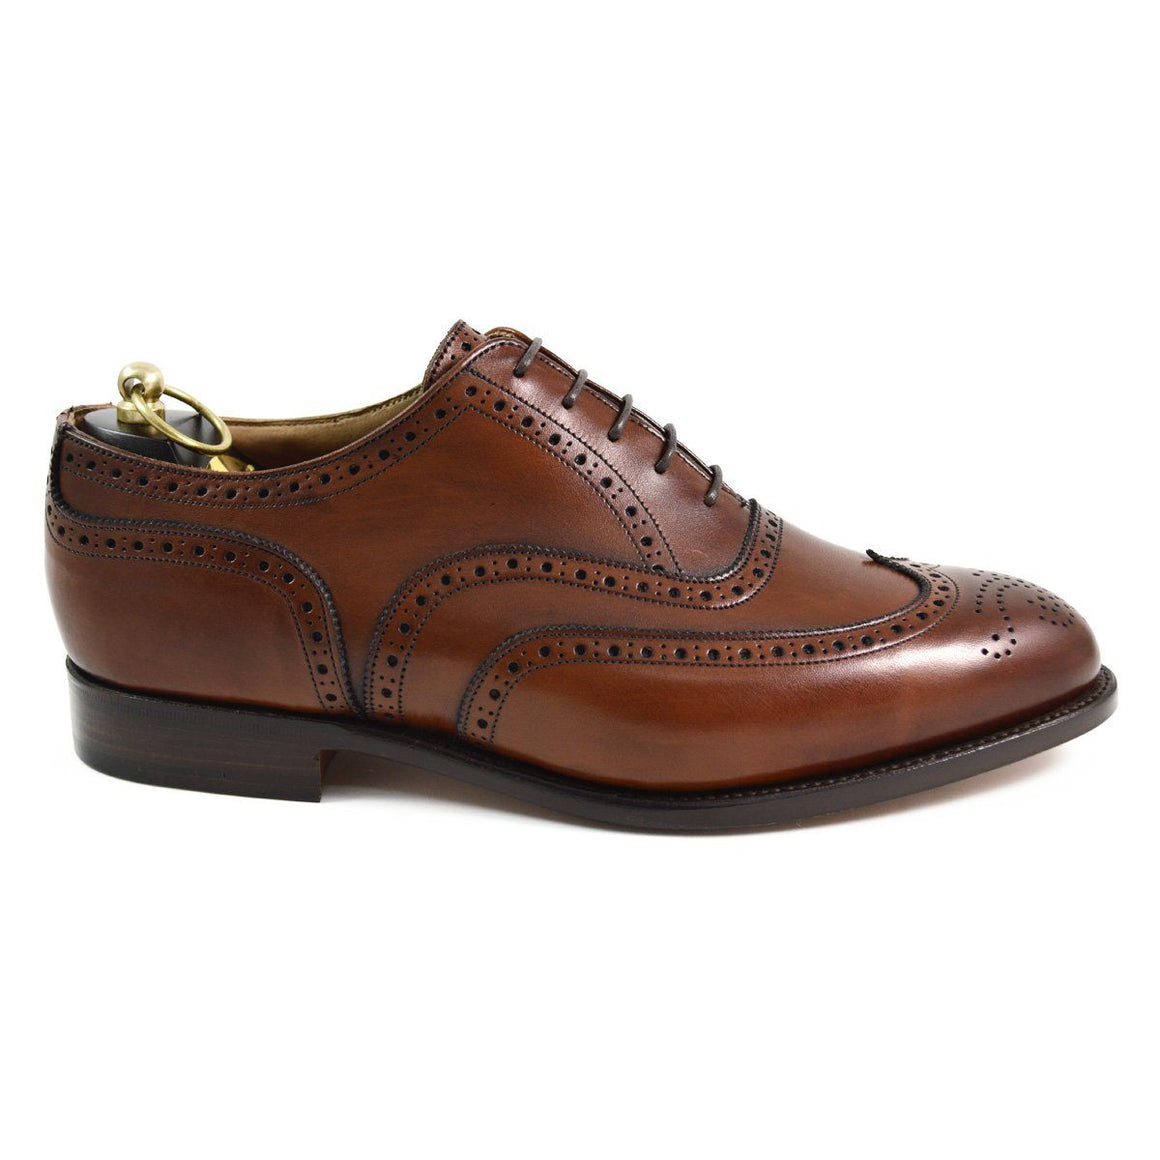 Trickers NORFOLK - Chestnut